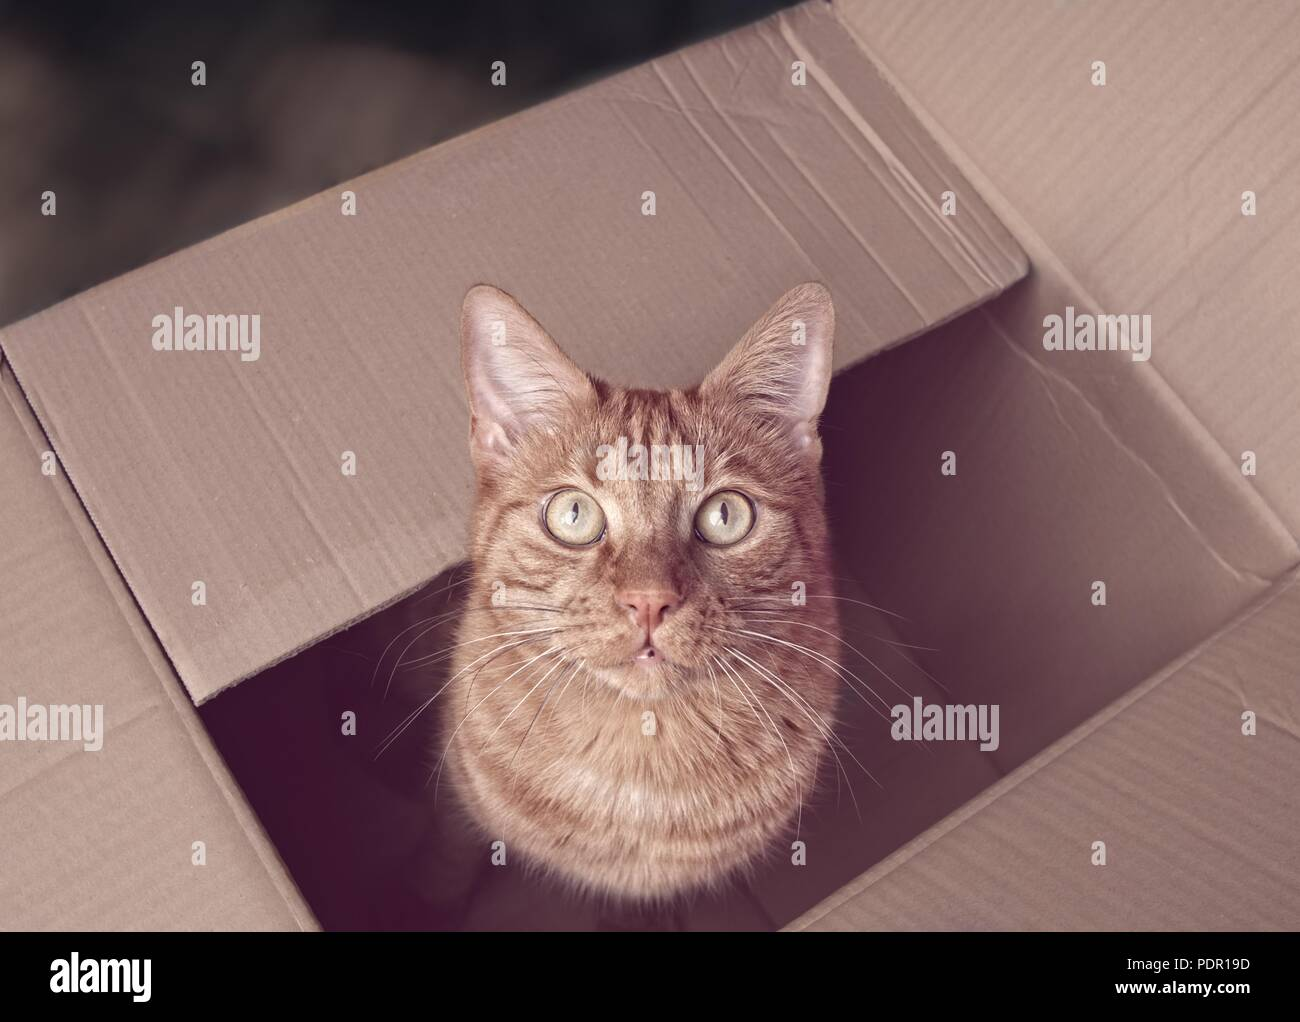 Cute ginger cat sitting in a cardboard box and looking up to the camera. - Stock Image